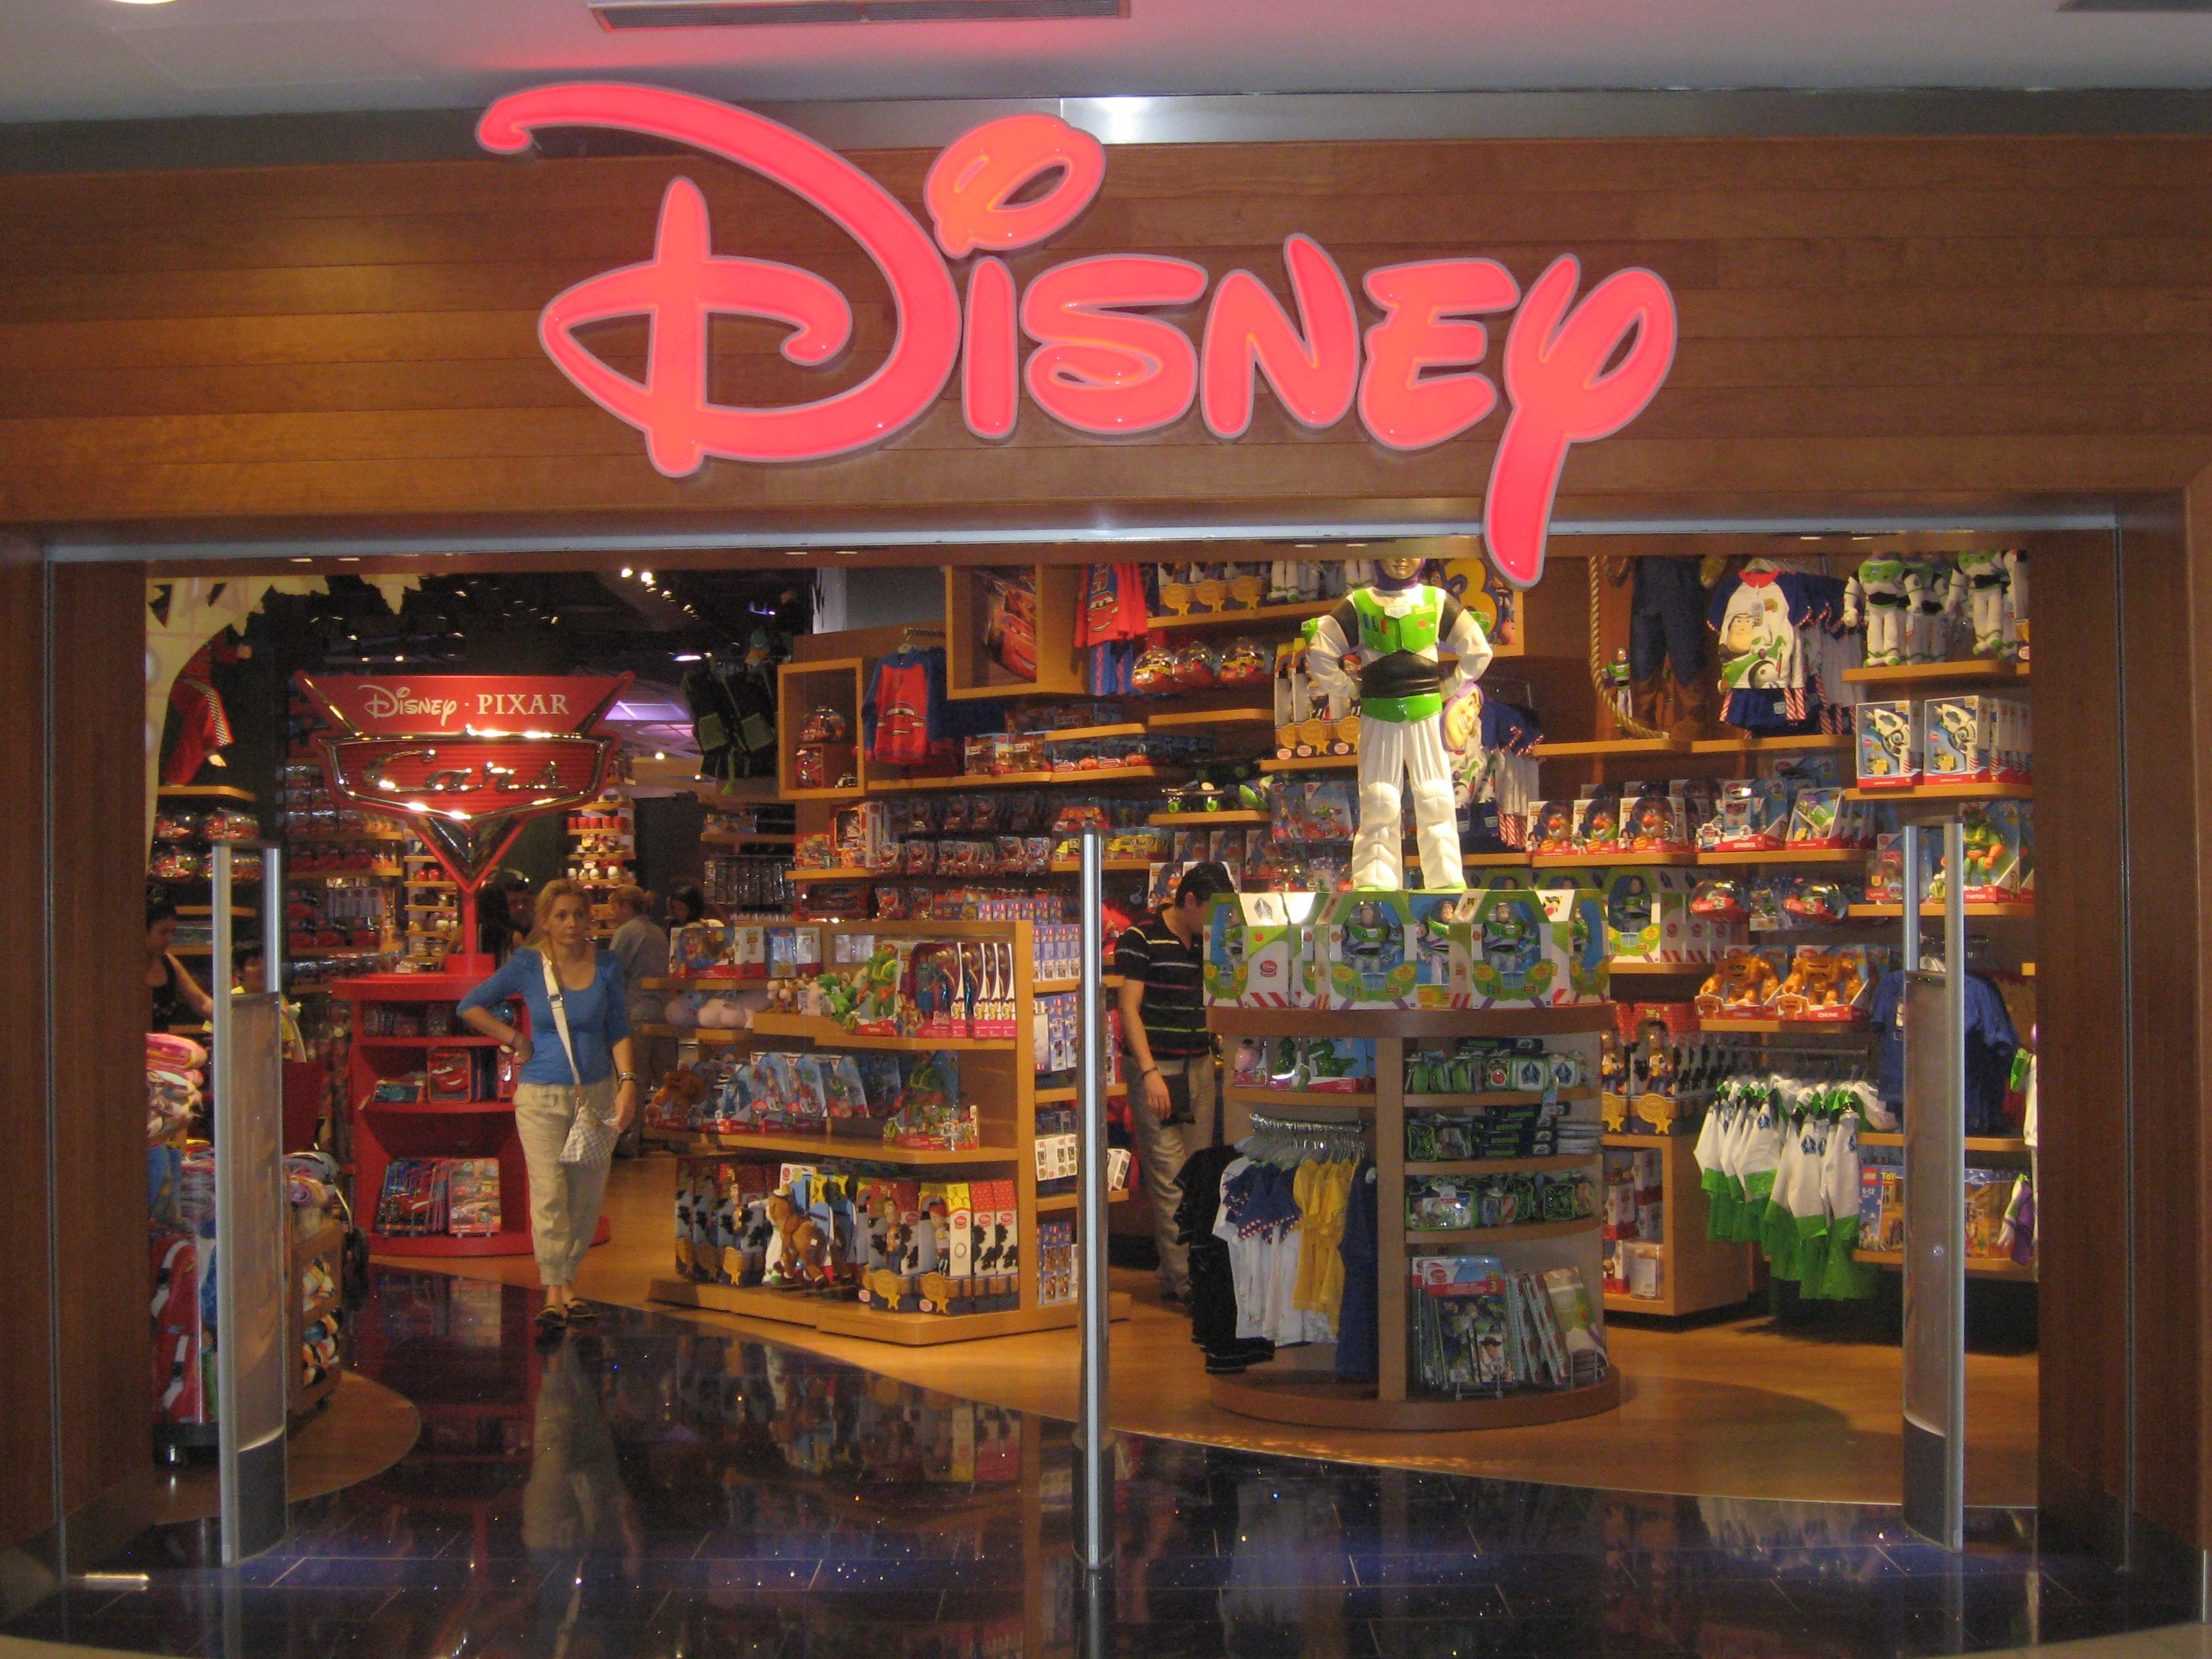 La Narrativa Transmedia En El Mundo De Disney By Marc Atanasio Medium